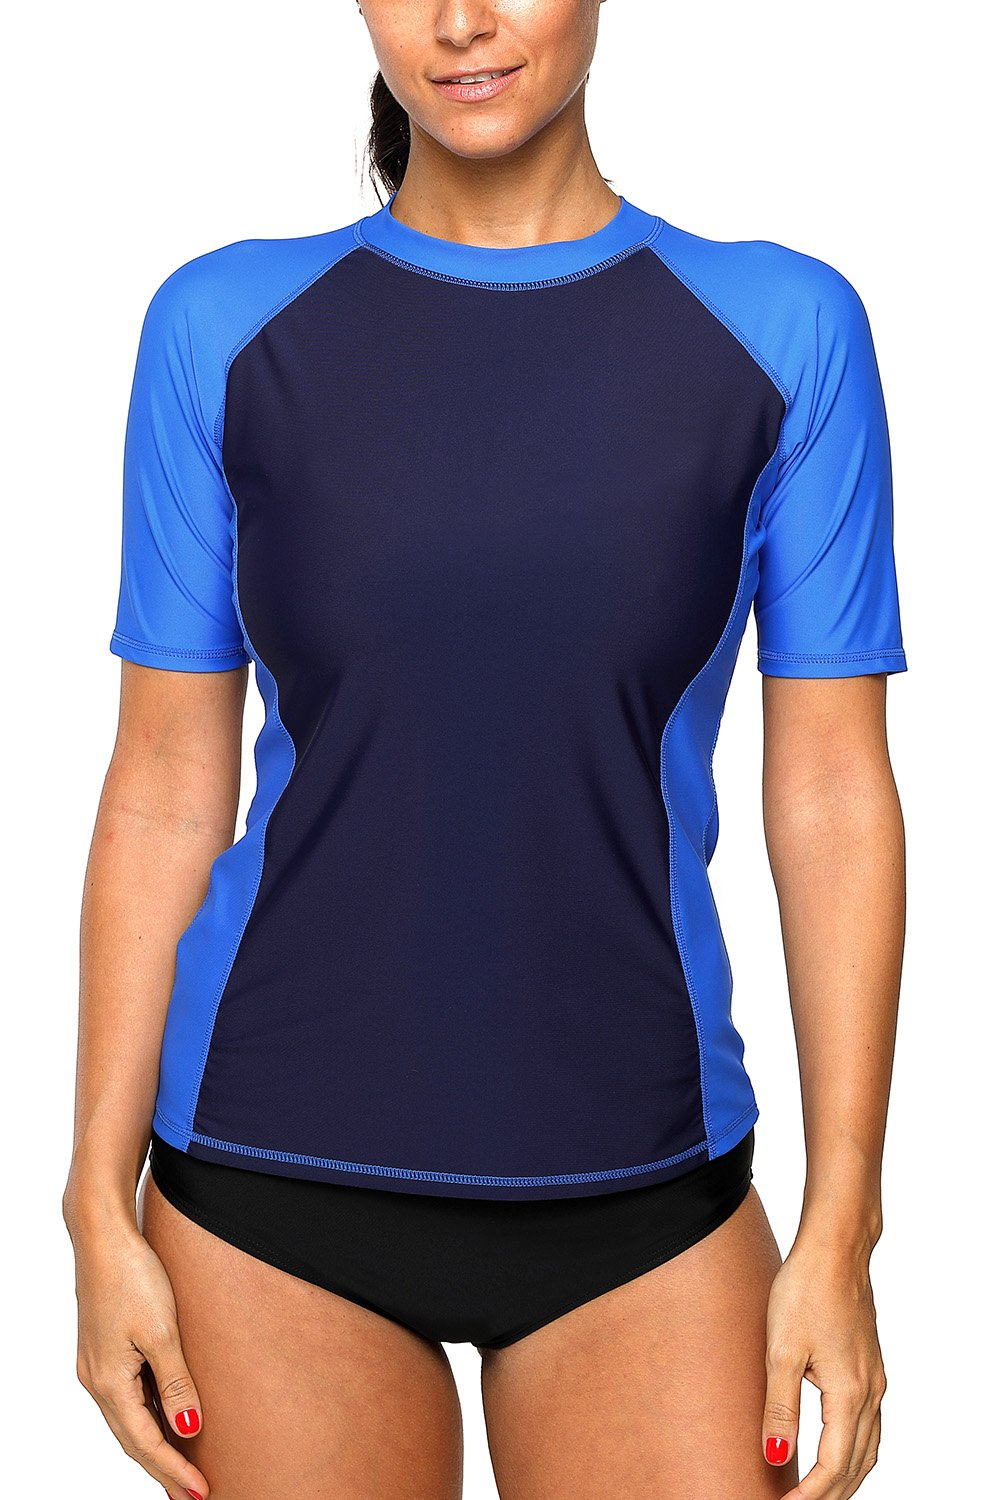 CharmLeaks Women's Short Sleeve Rash Vest Surf Sports Rash Guard Tops Swimsuits Swimwear UPF 50+